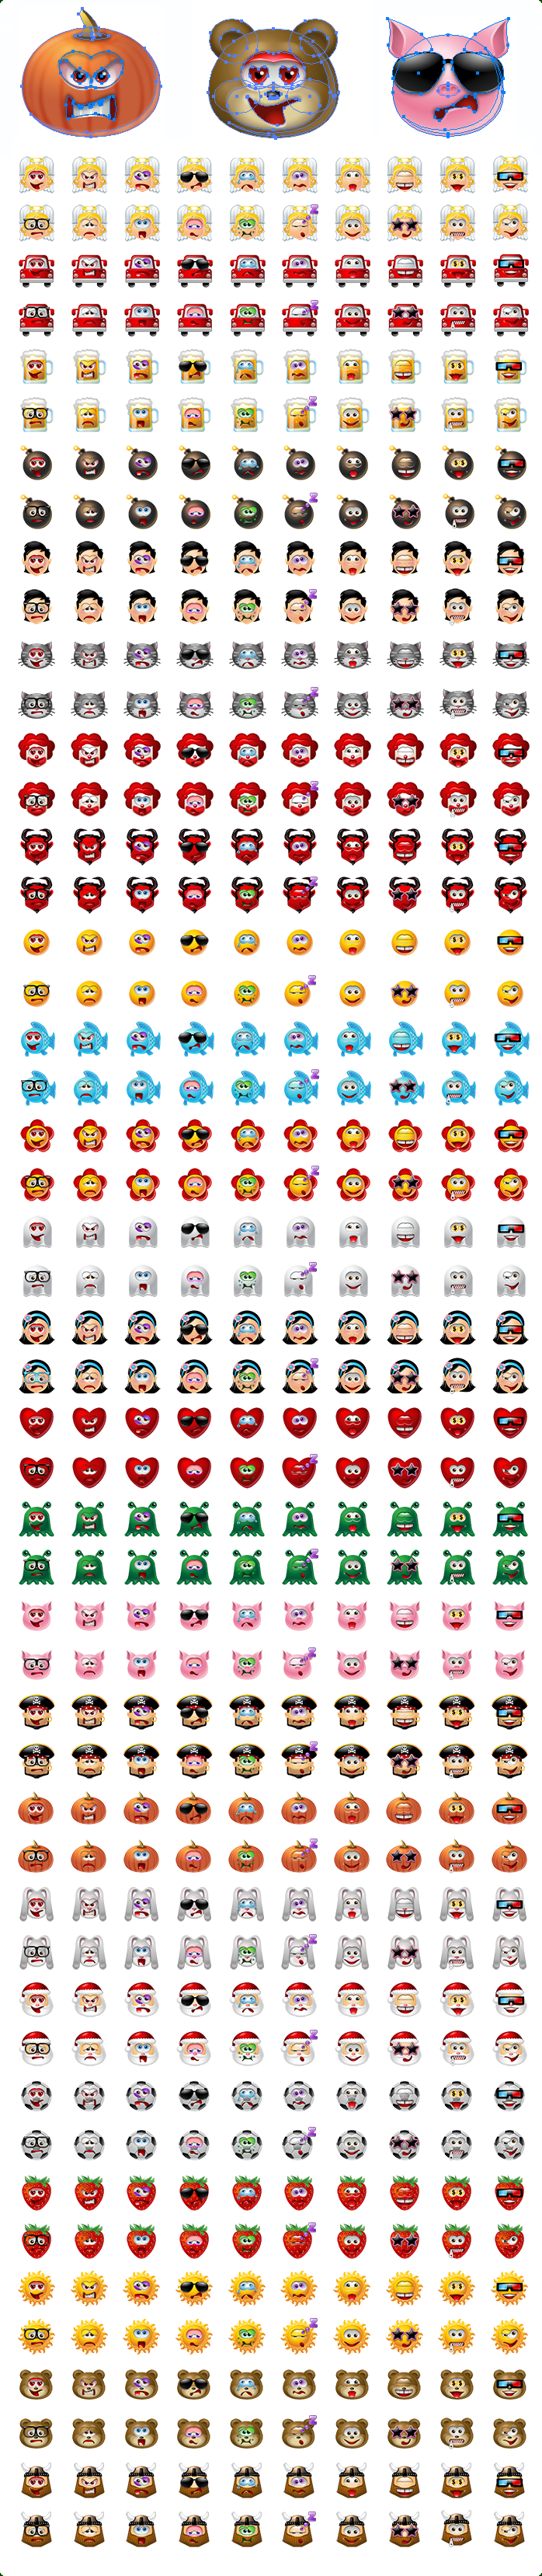 Icons-Land Vector Multiple Smileys Screenshot